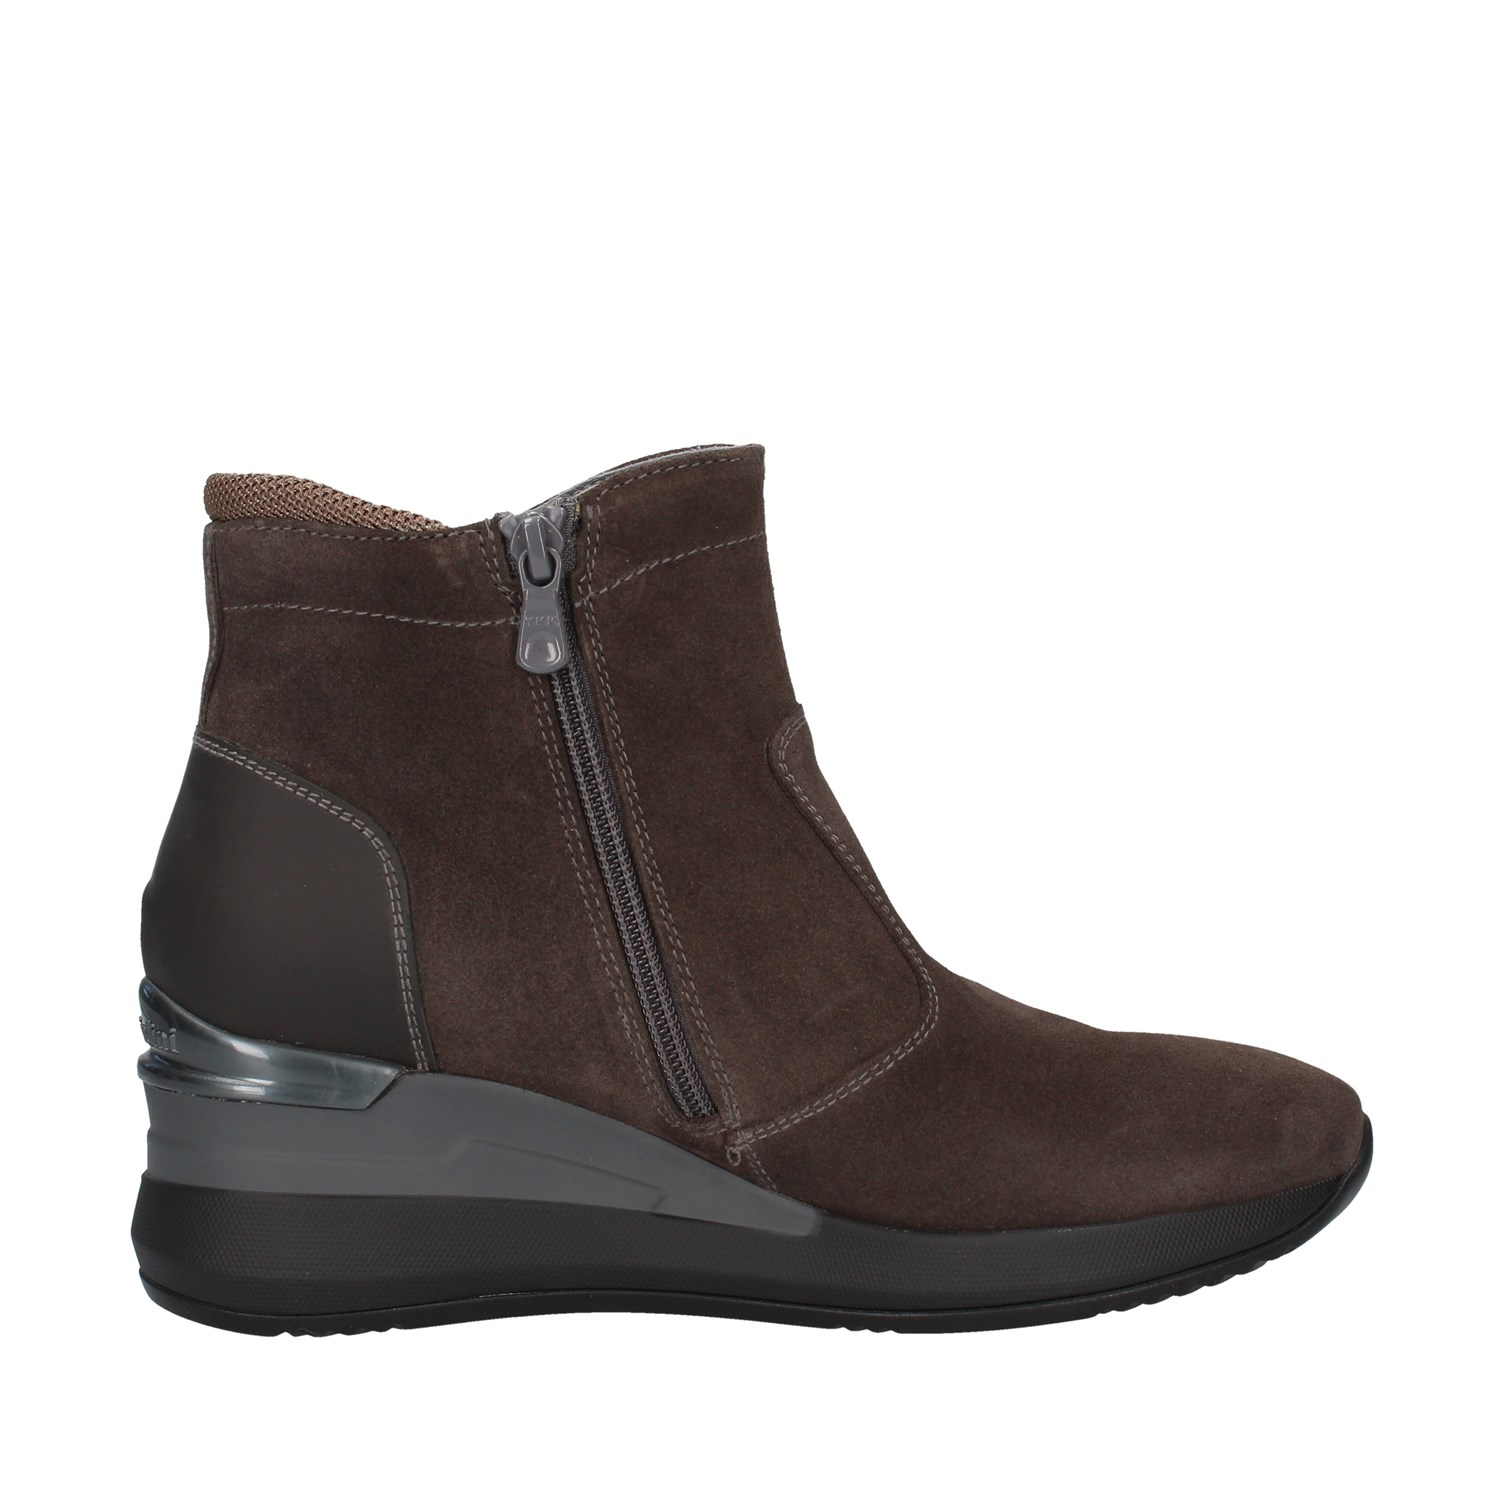 Nero Giardini Shoes Woman boots BROWN A908862D